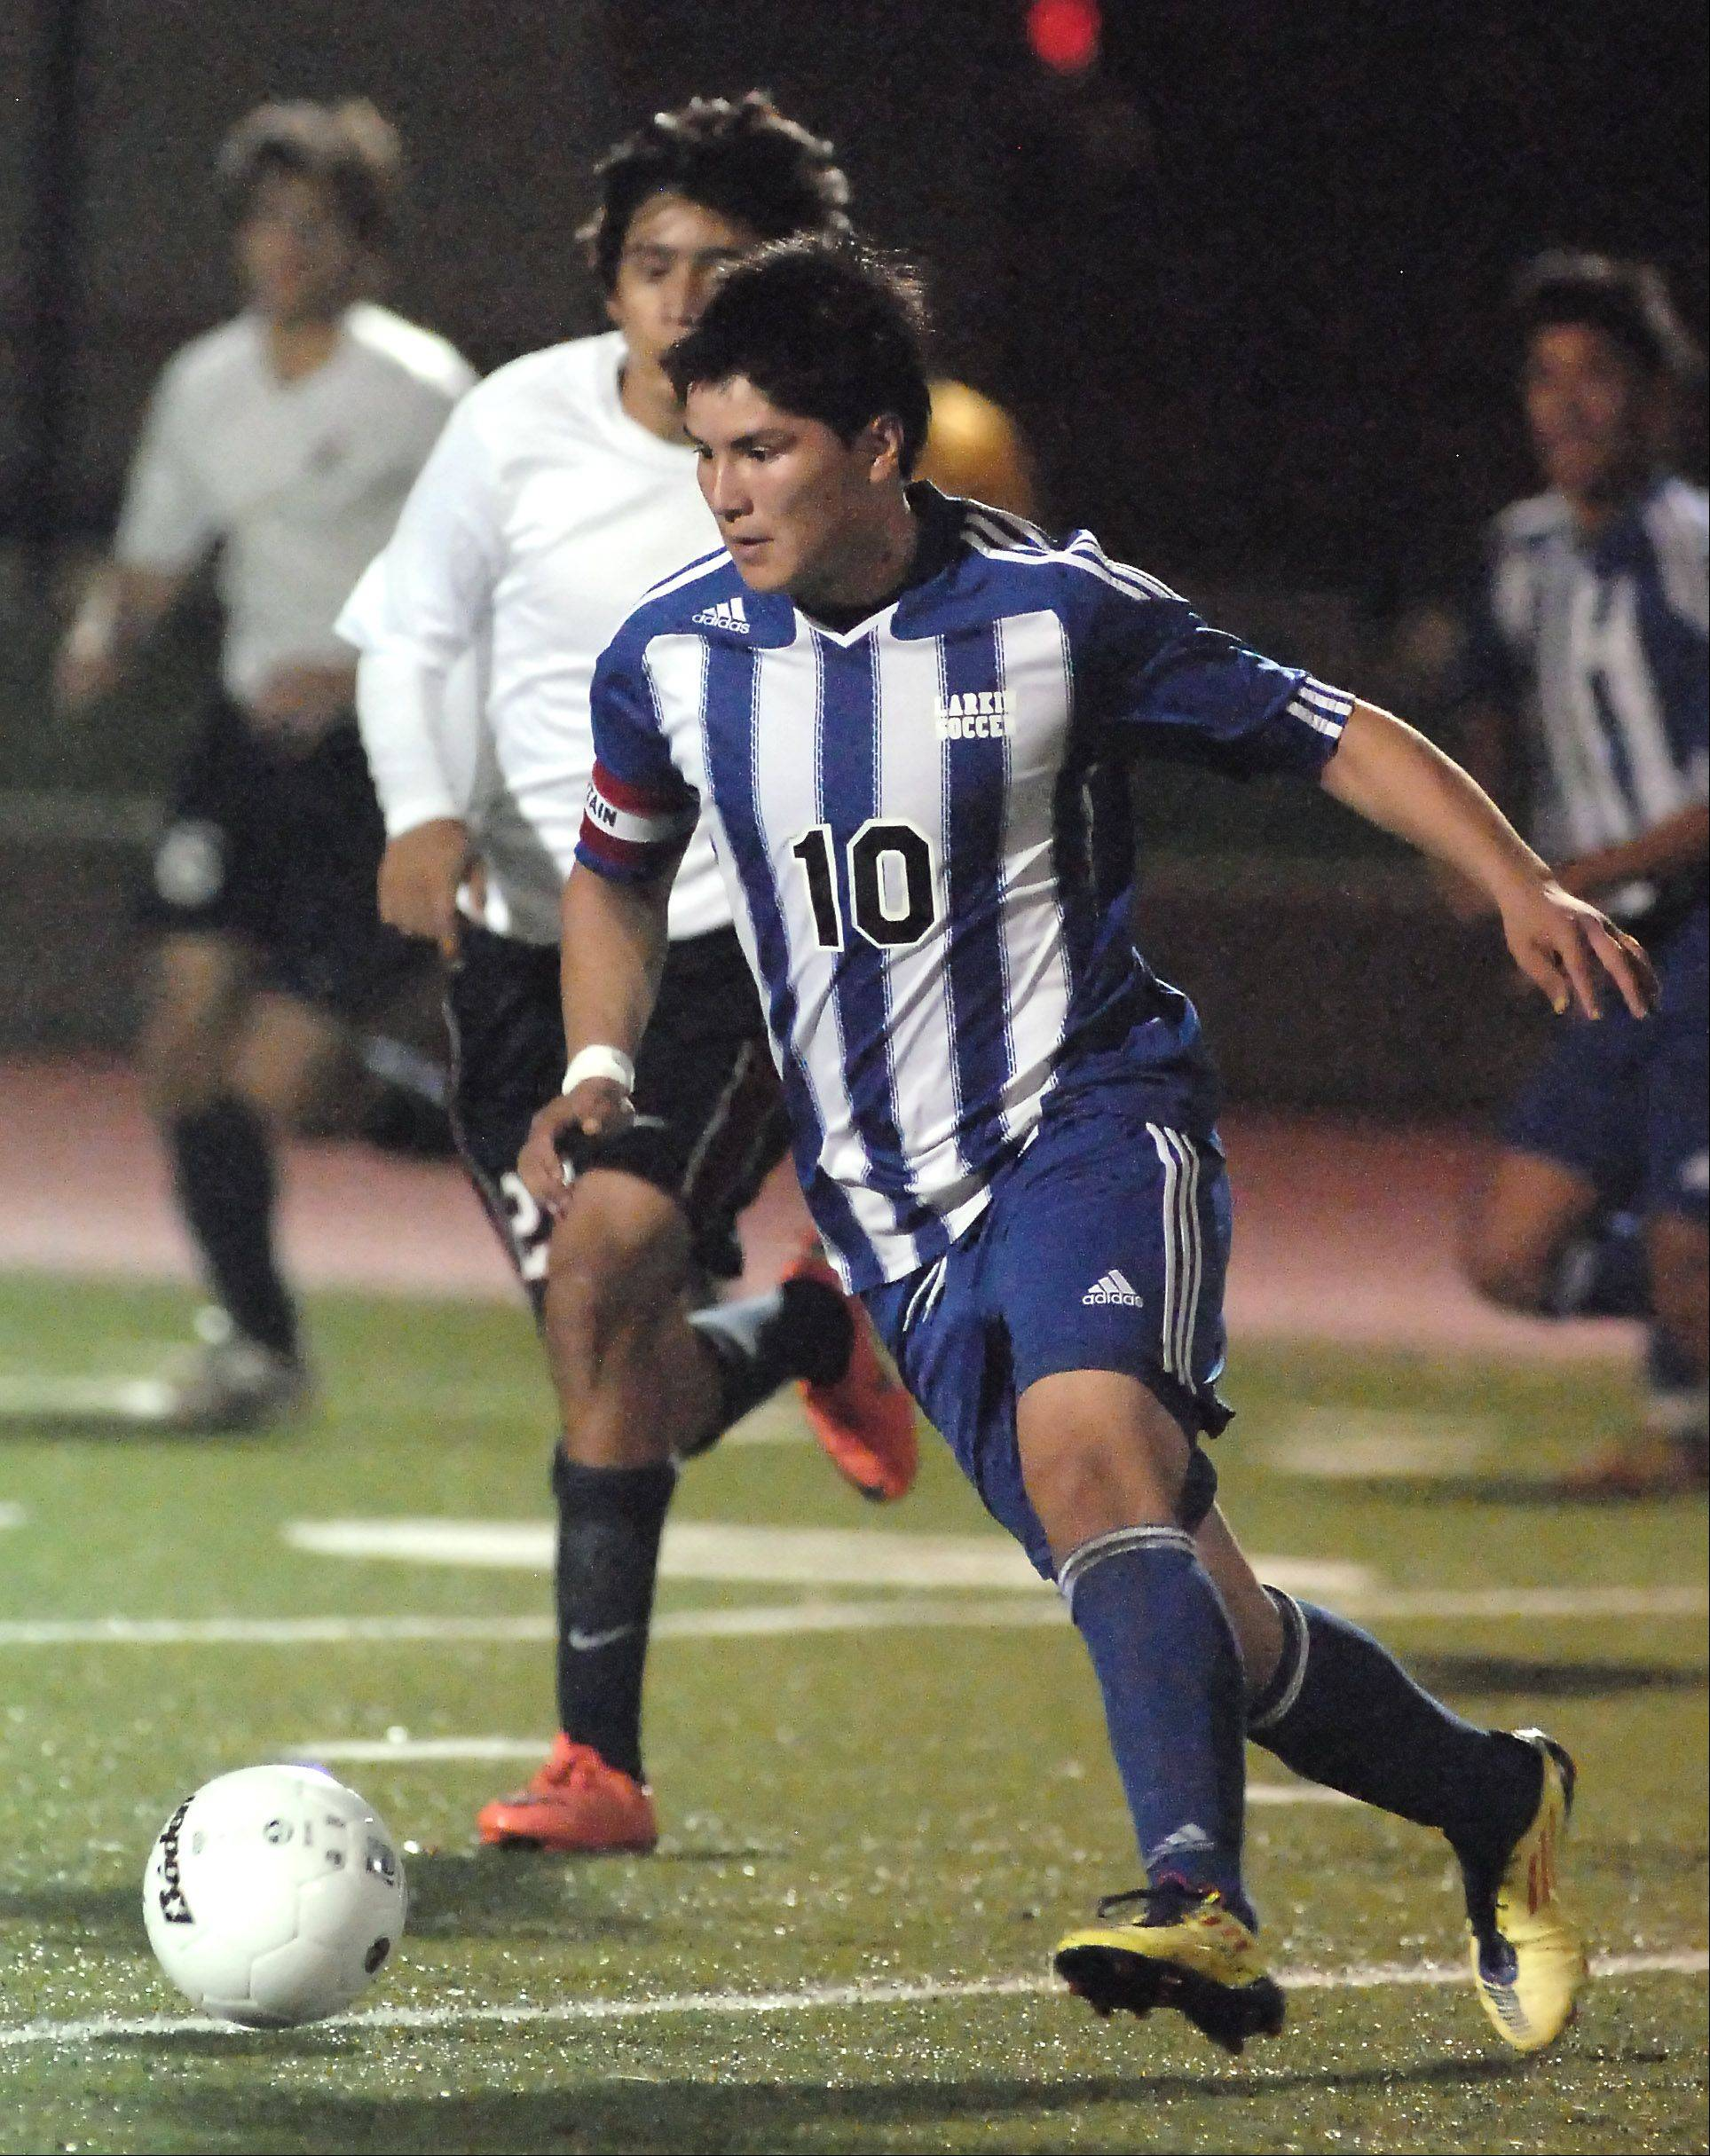 Larkin senior forward Erik Rodriguez is the honorary captain of the Daily Herald�s All-Area team for a second straight season. Rodriguez had 22 goals and 14 assists heading into sectional play. An all-conference selection the last three years, Rodriguez led the Royals in scoring all four years.